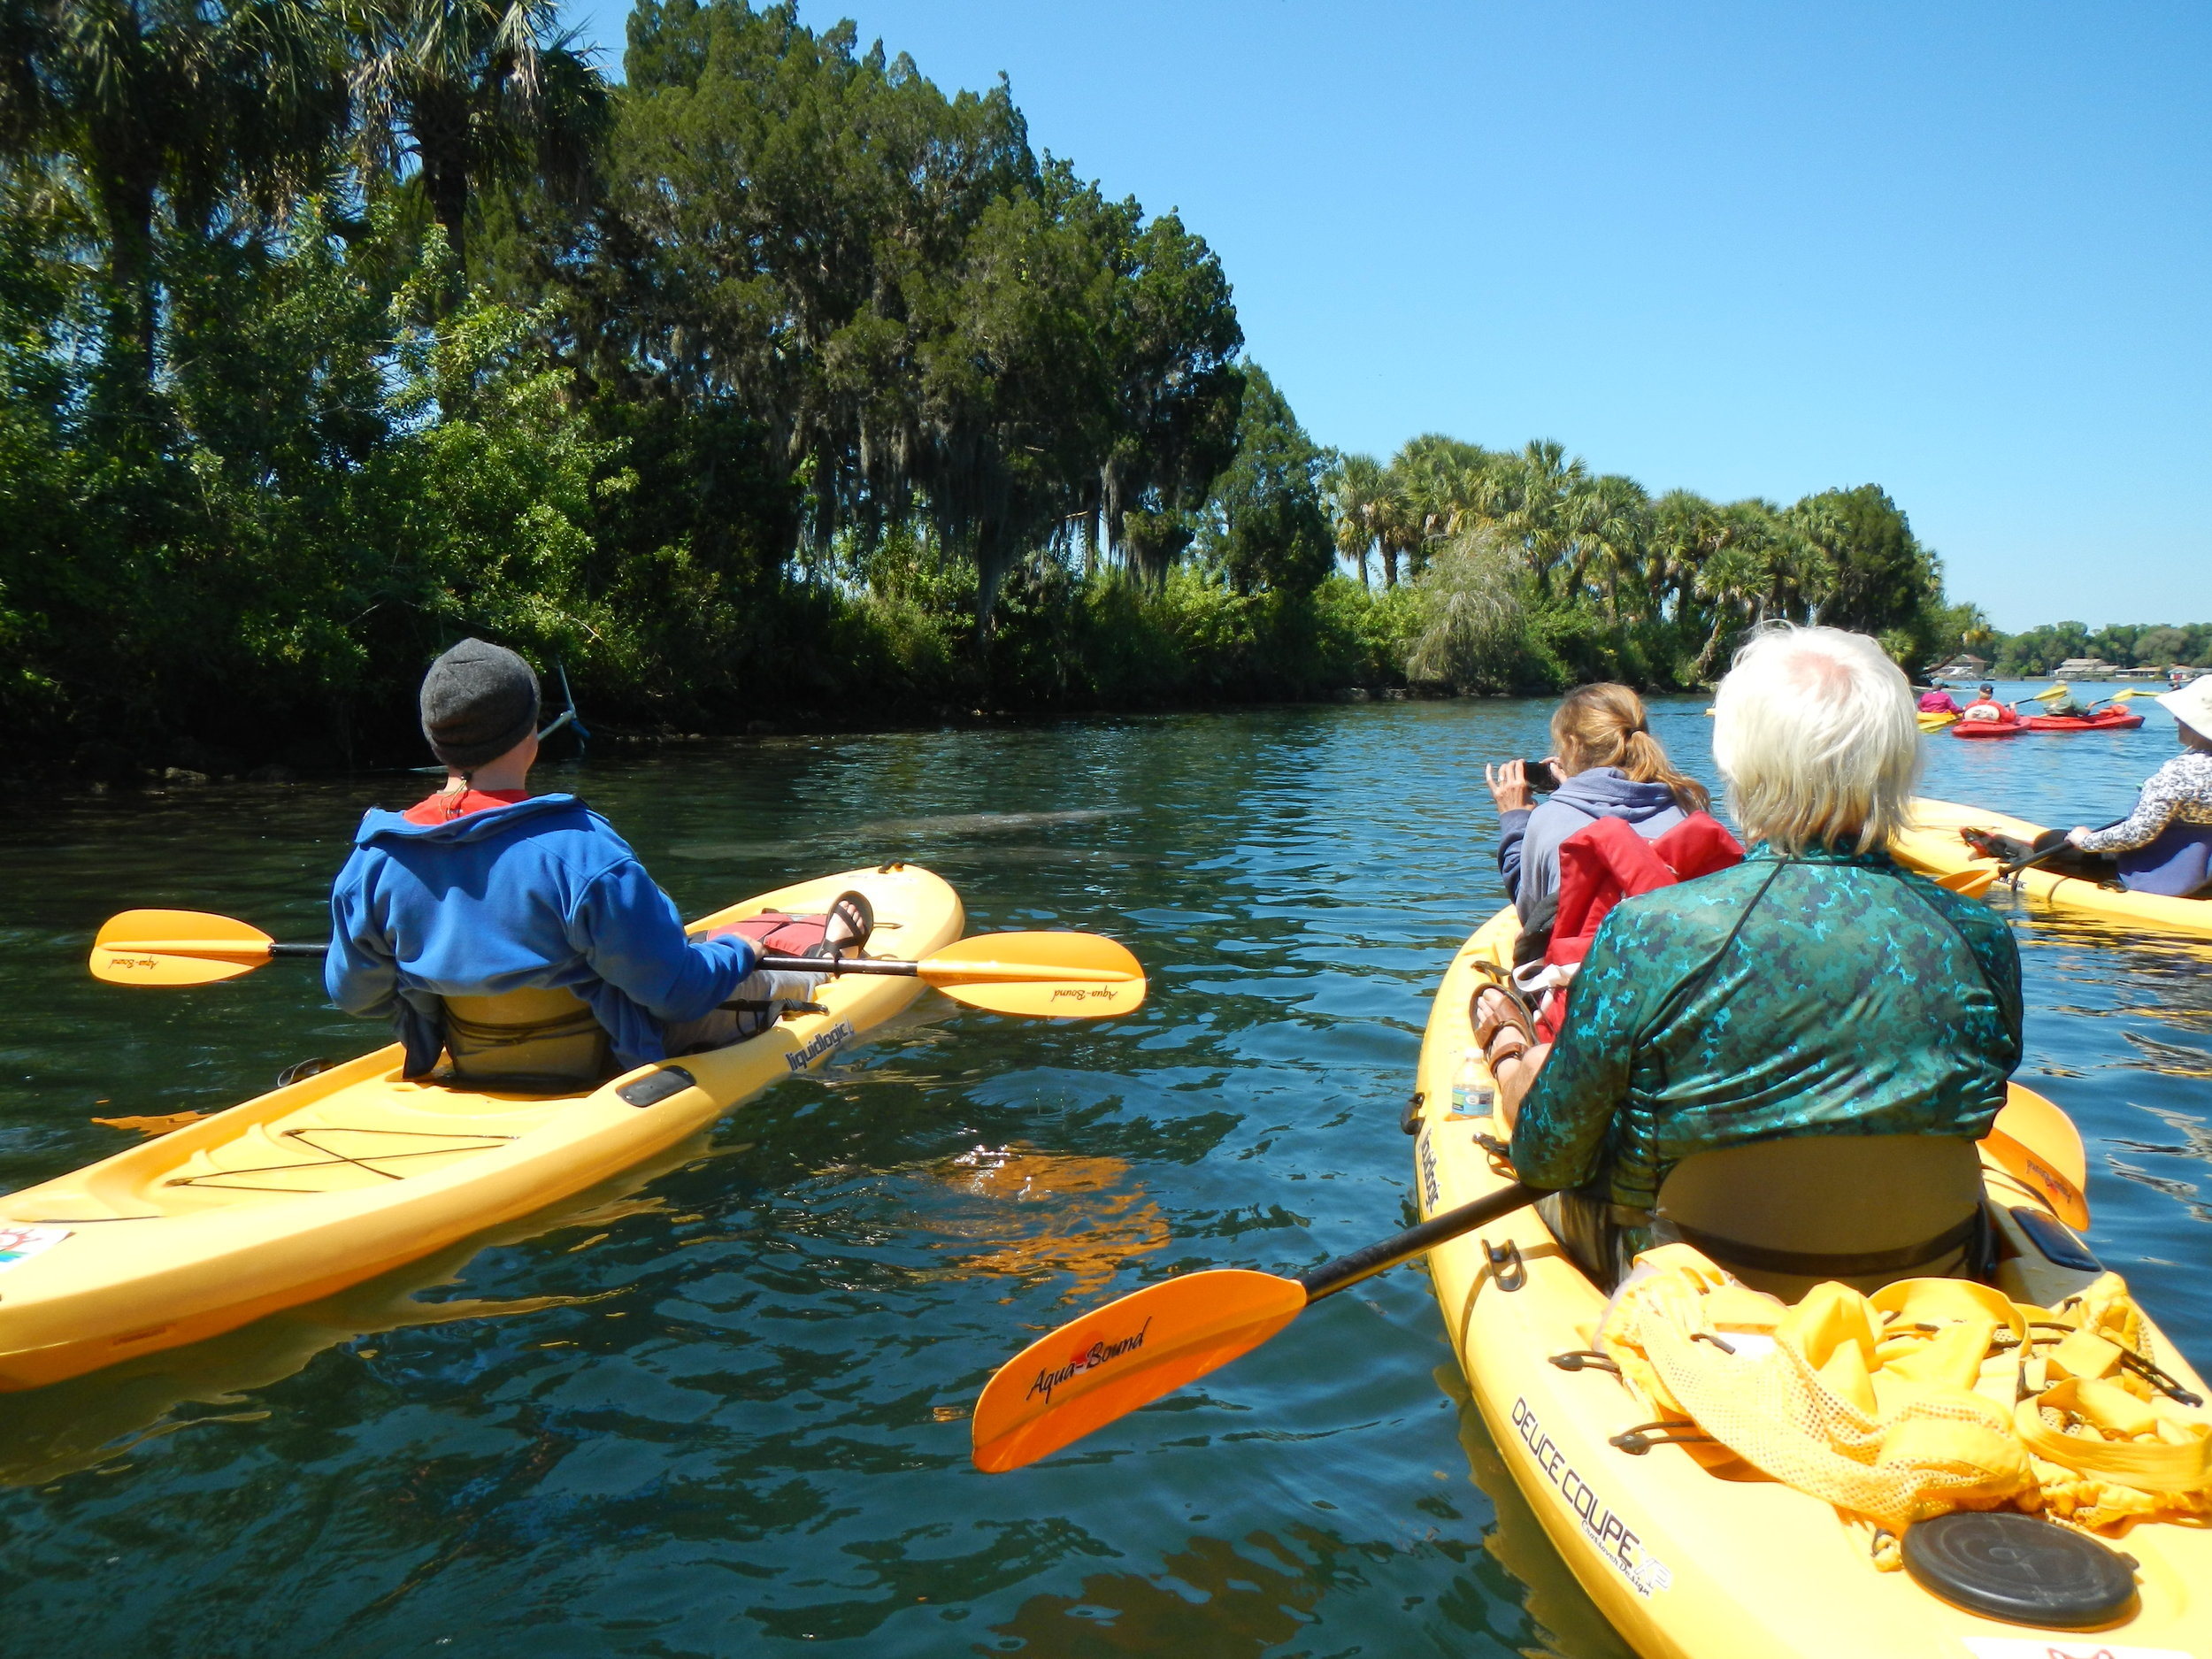 This tour is located about an hour north of Tampa.  We'll wind our way through the community of Crystal River and meet some underwater inhabitants.  This paddle is offered year-round but manatees are best seen in Winter months (Nov-Feb)